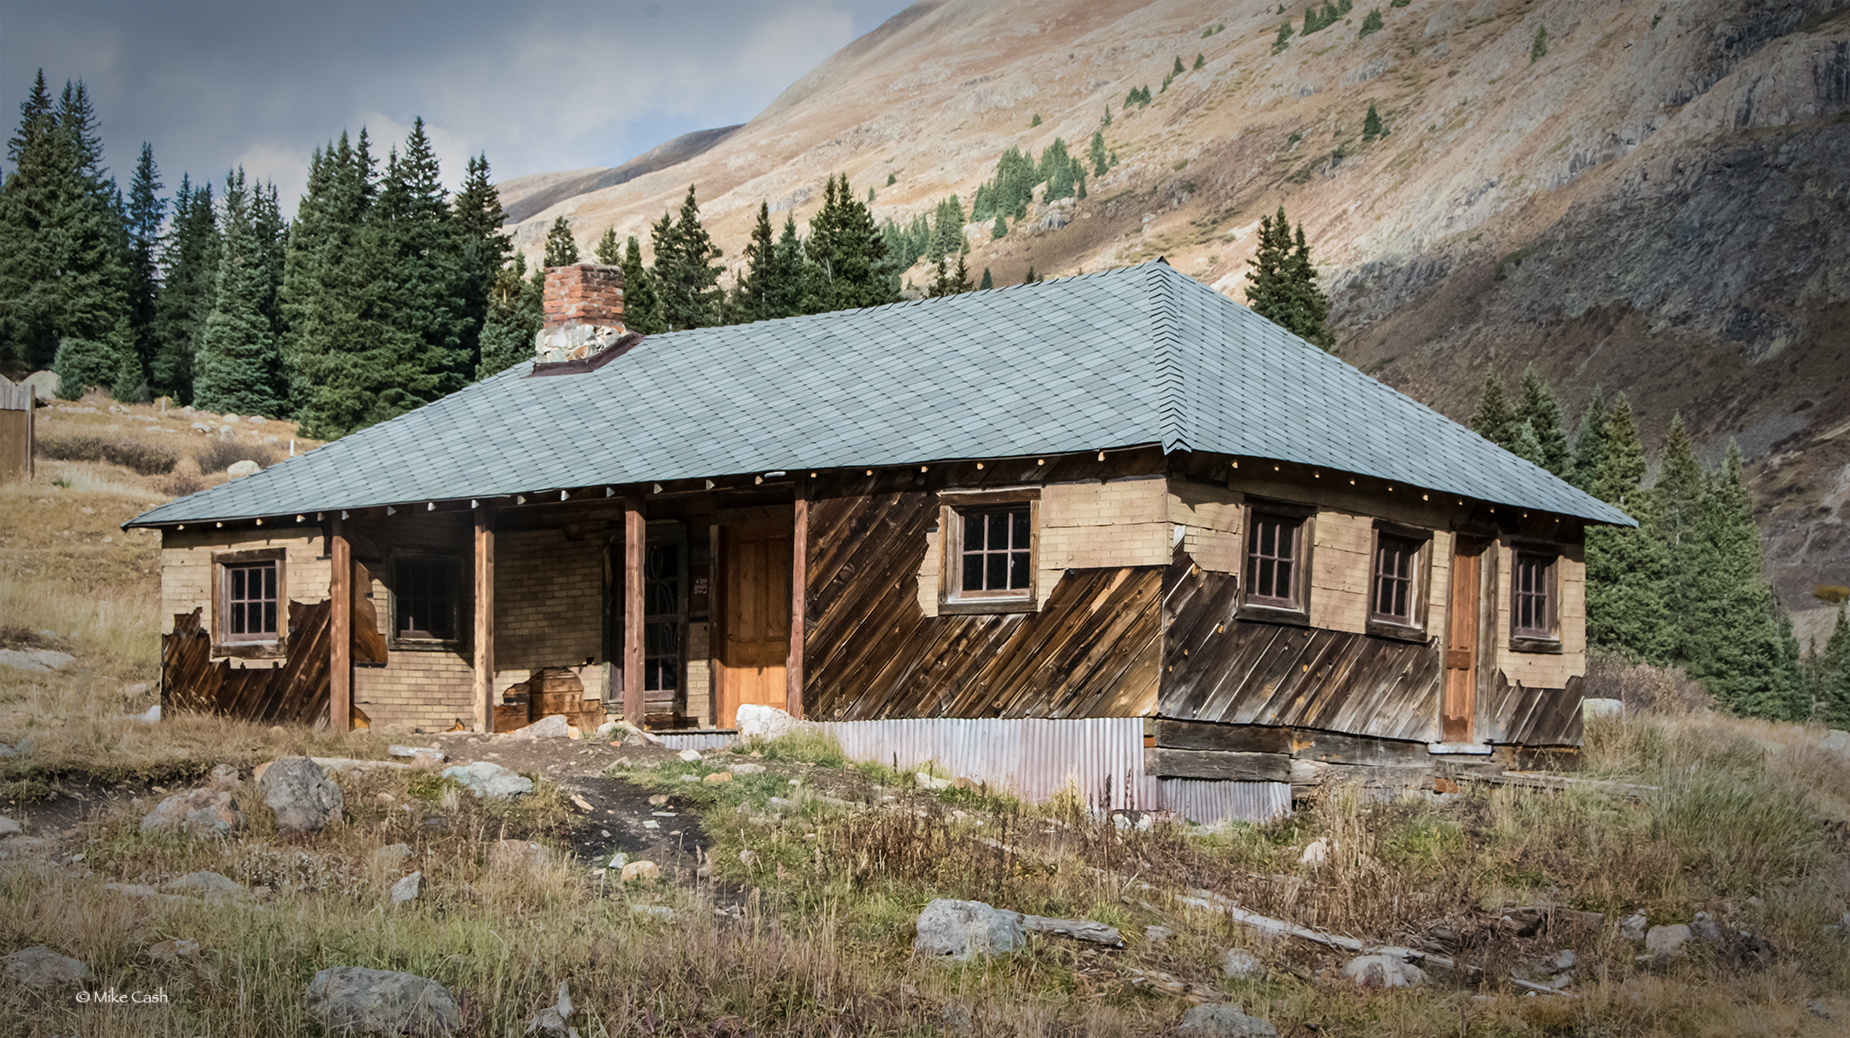 A larger house at Animas Forks